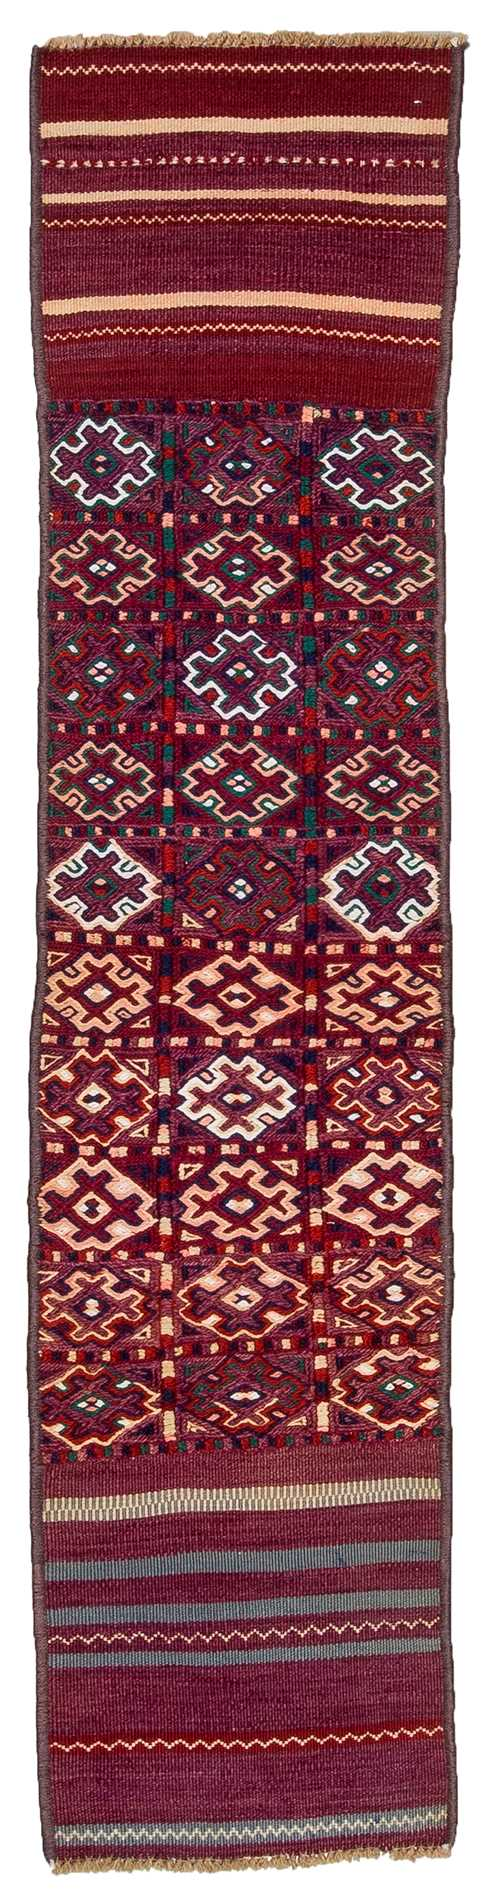 Decorative Hand Embroidery Runner Rug-6328